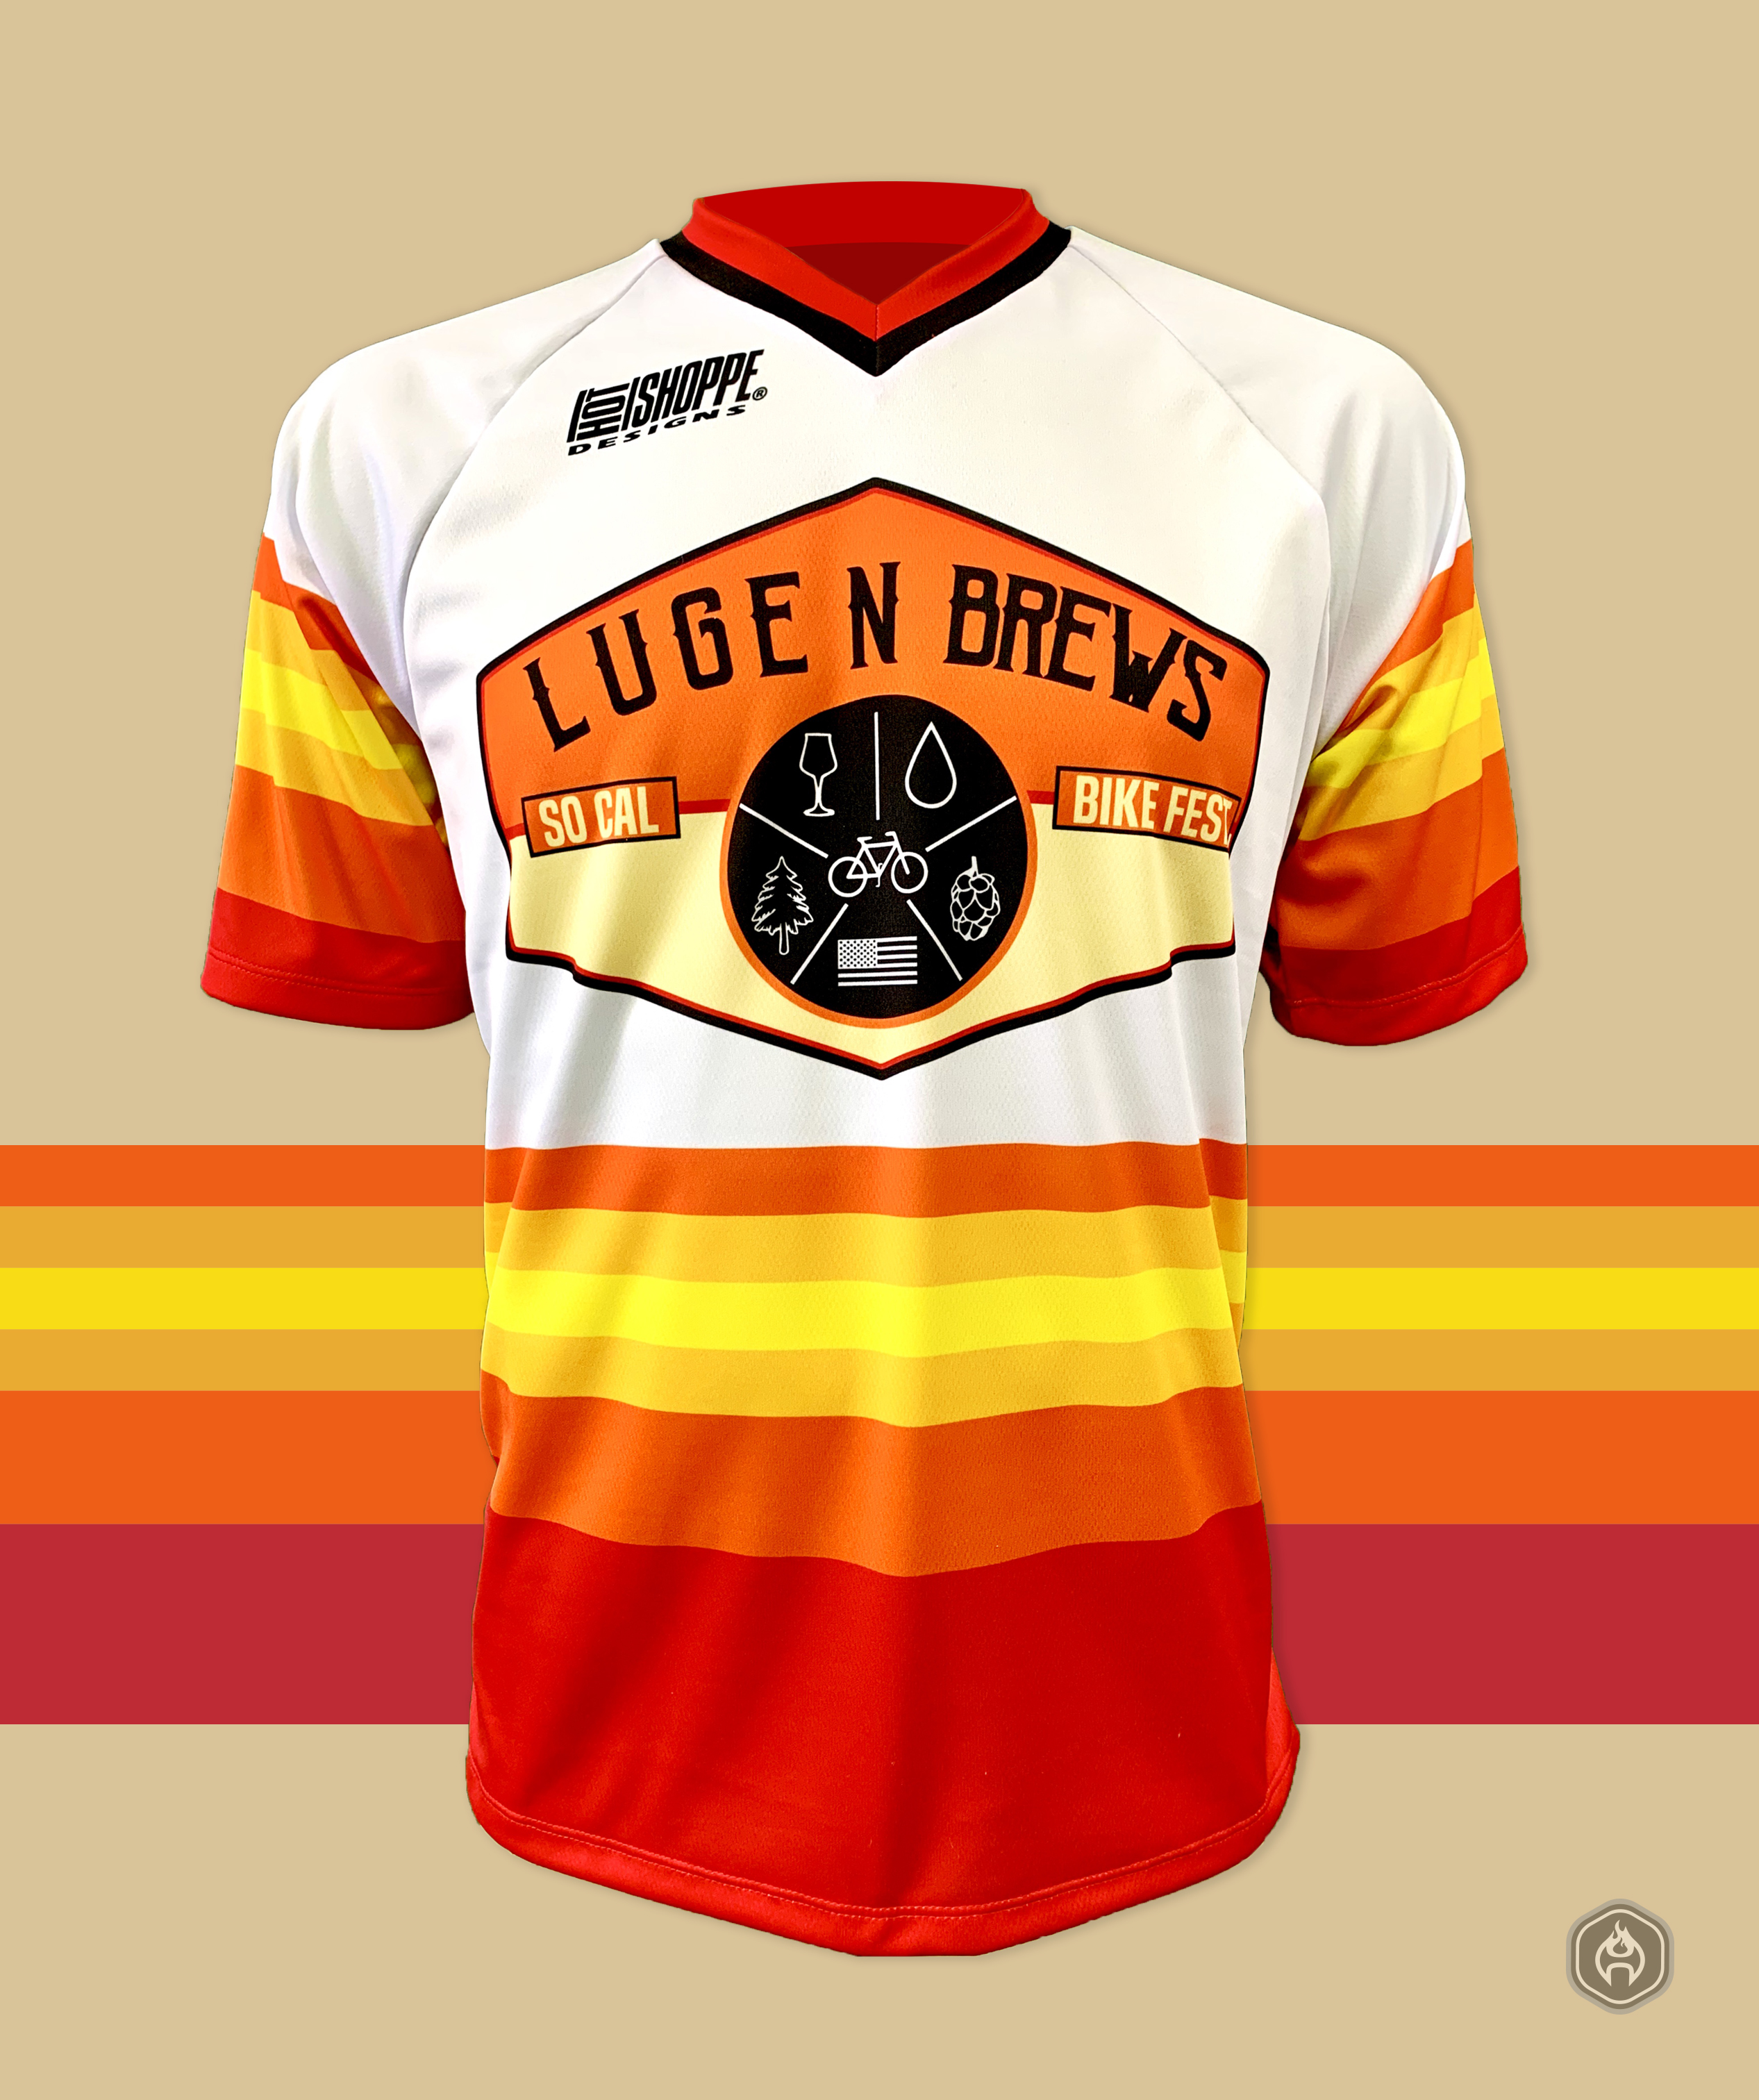 Luge N Brews Jersey Instagram